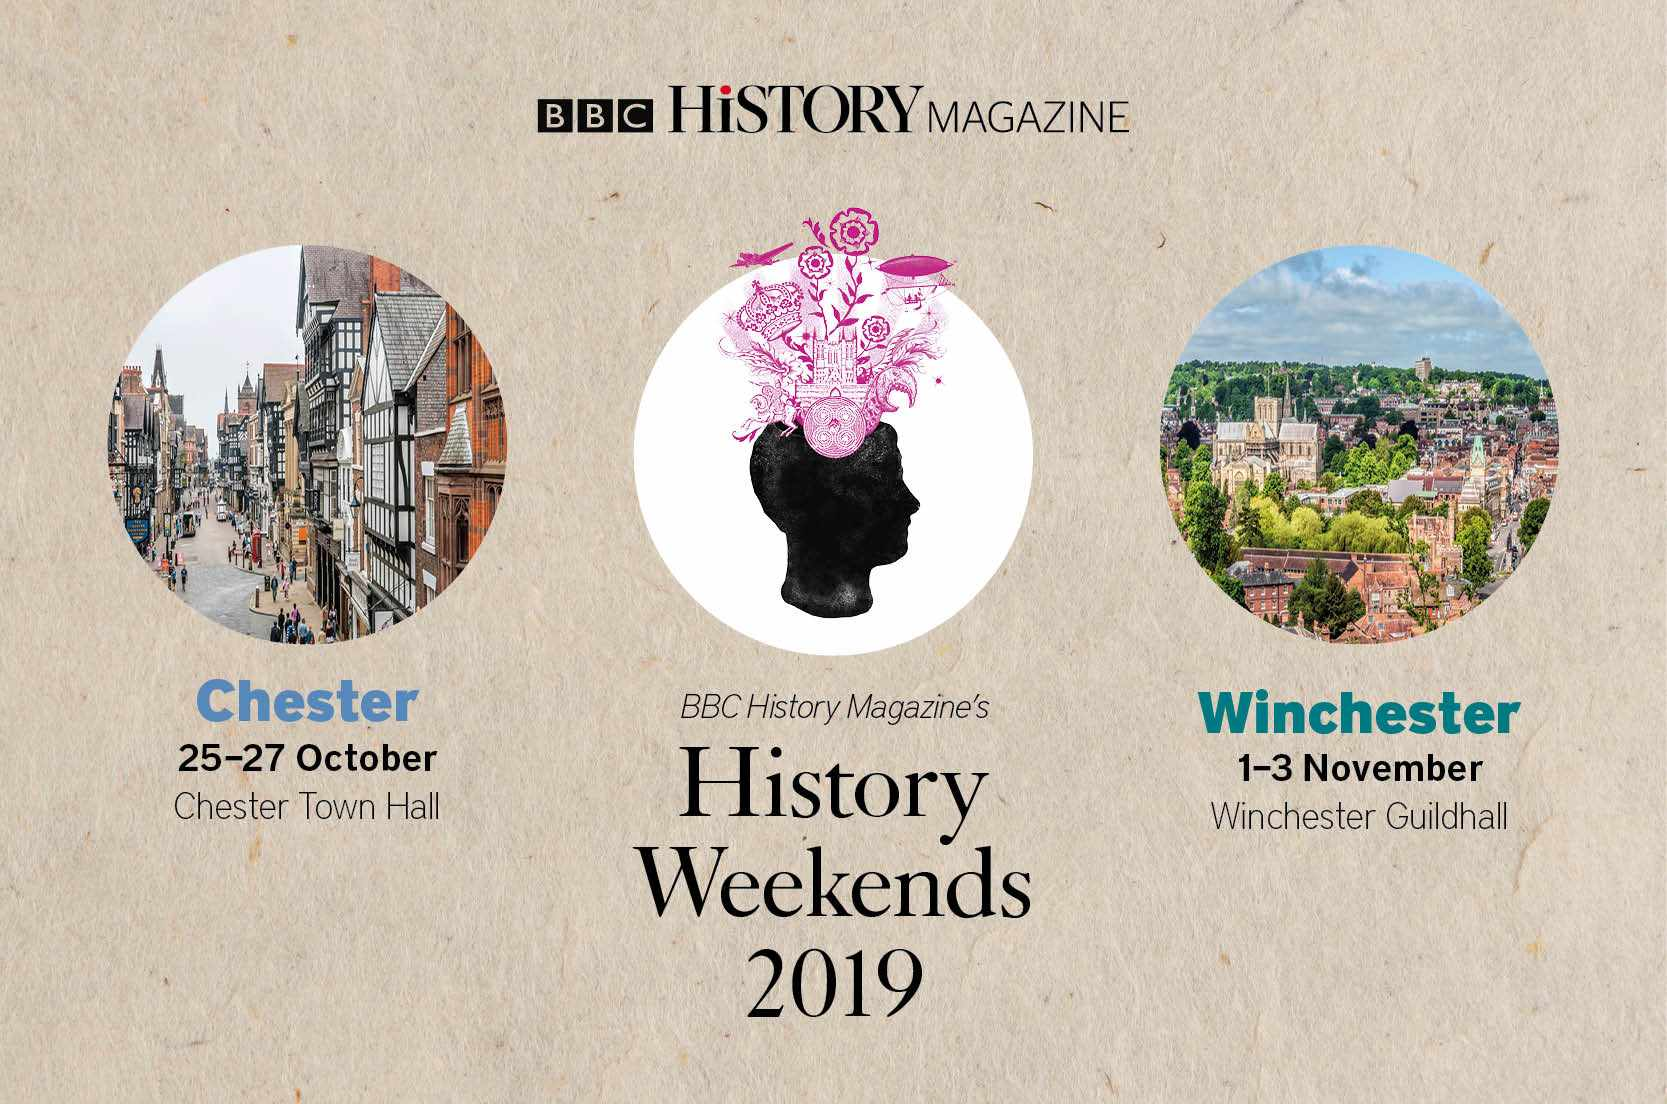 BBC History Magazine will host two History Weekends in 2019.